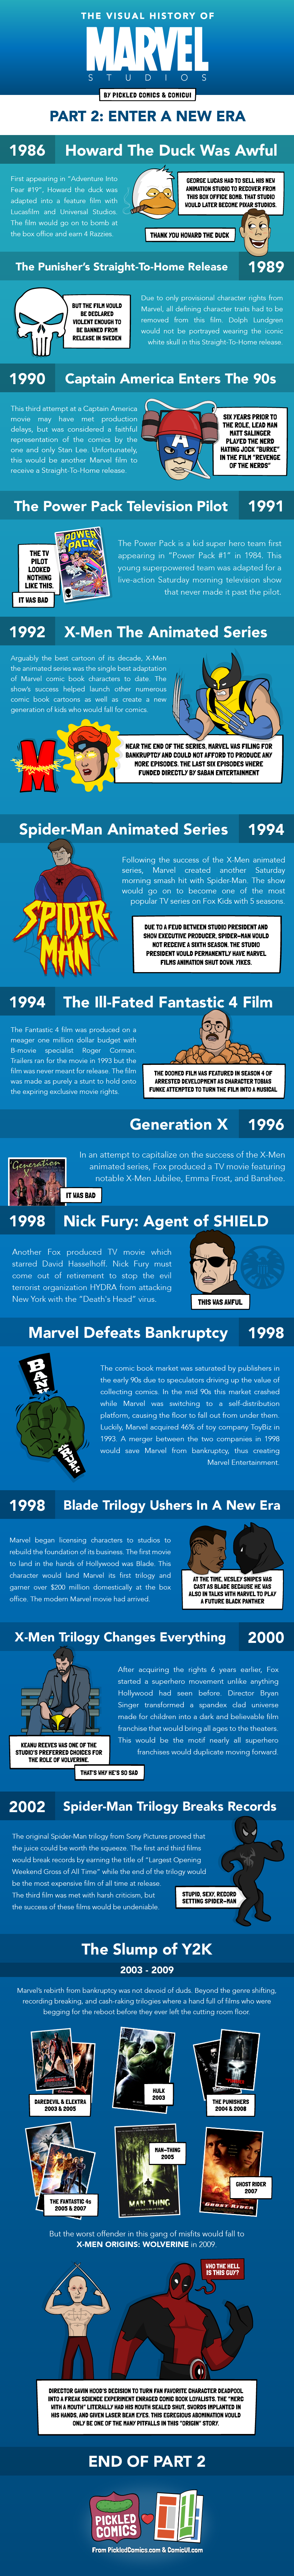 The Visual History Of Marvel Studios. Part 2 starts in 1986 with Howard the Duck and ends in 2009 with 6 years of Marvel movie duds.